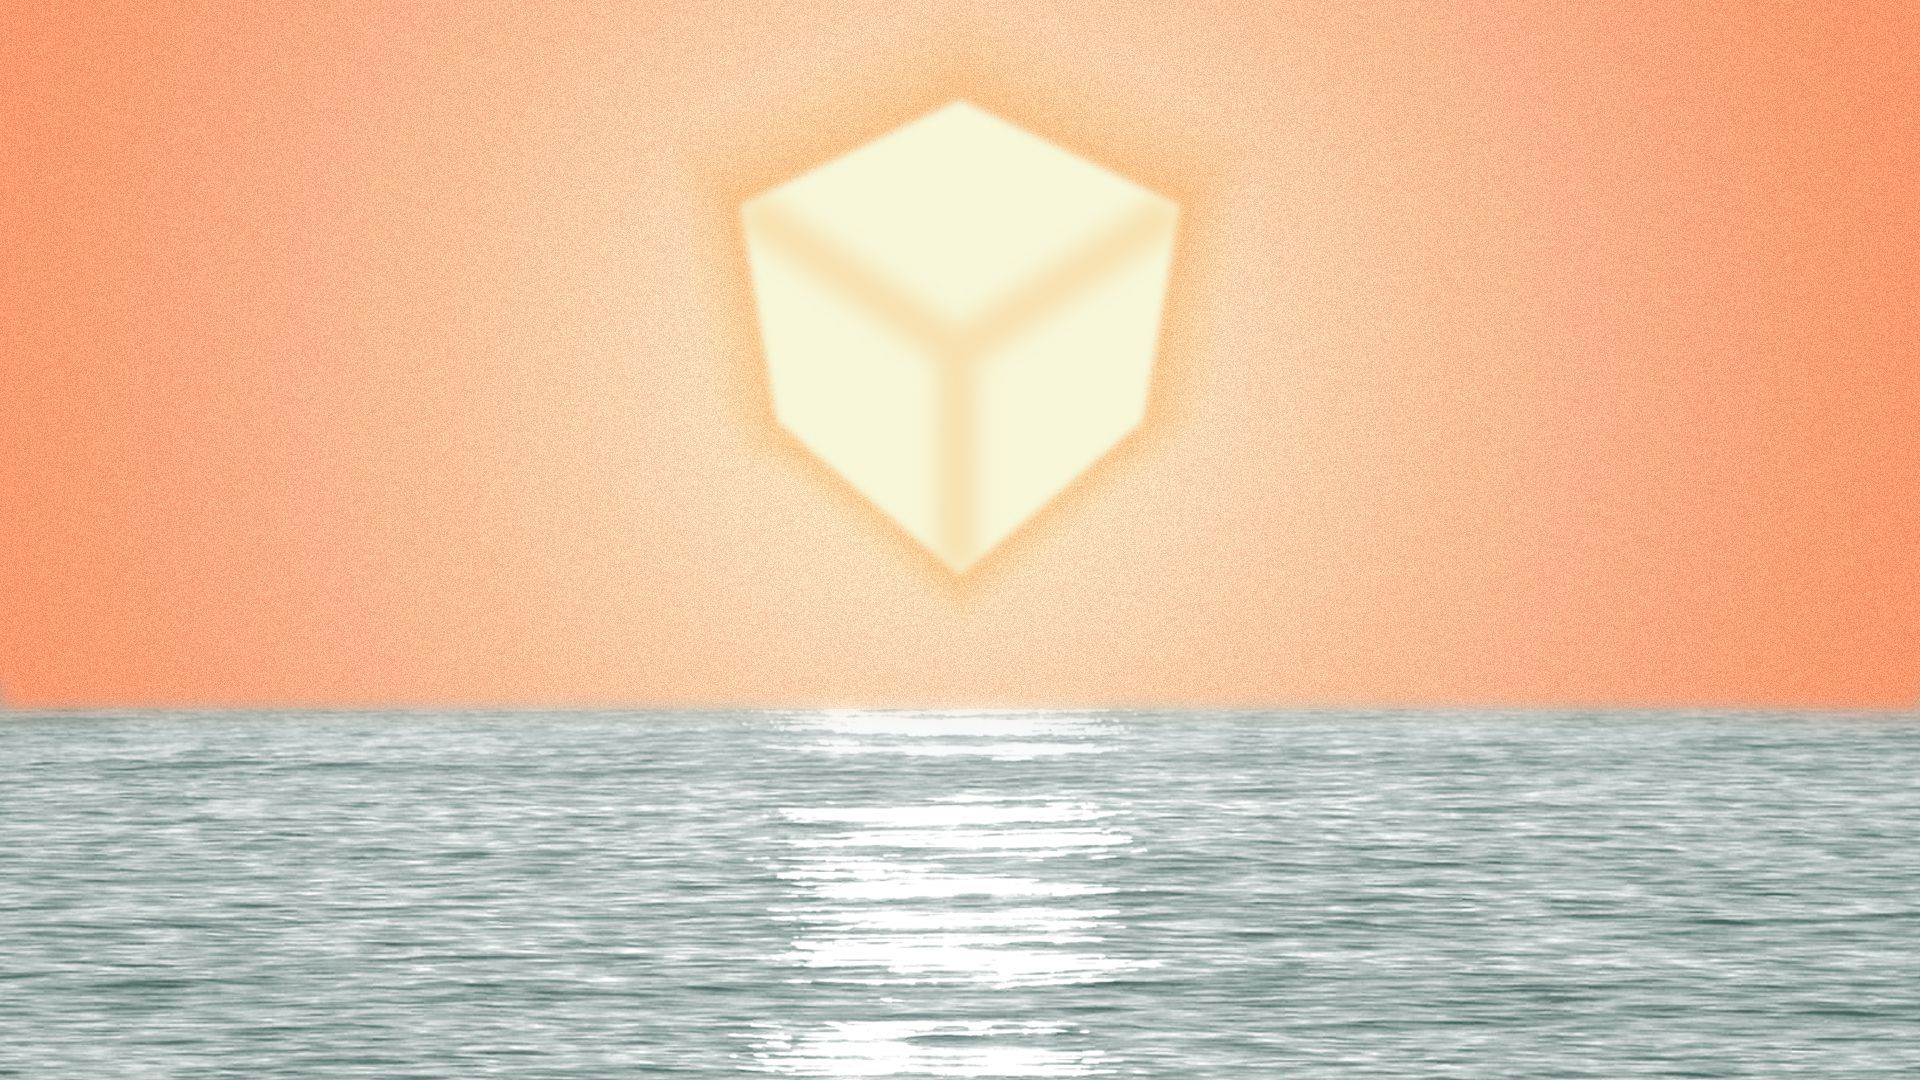 Illustration of a block-shaped sun over the water.